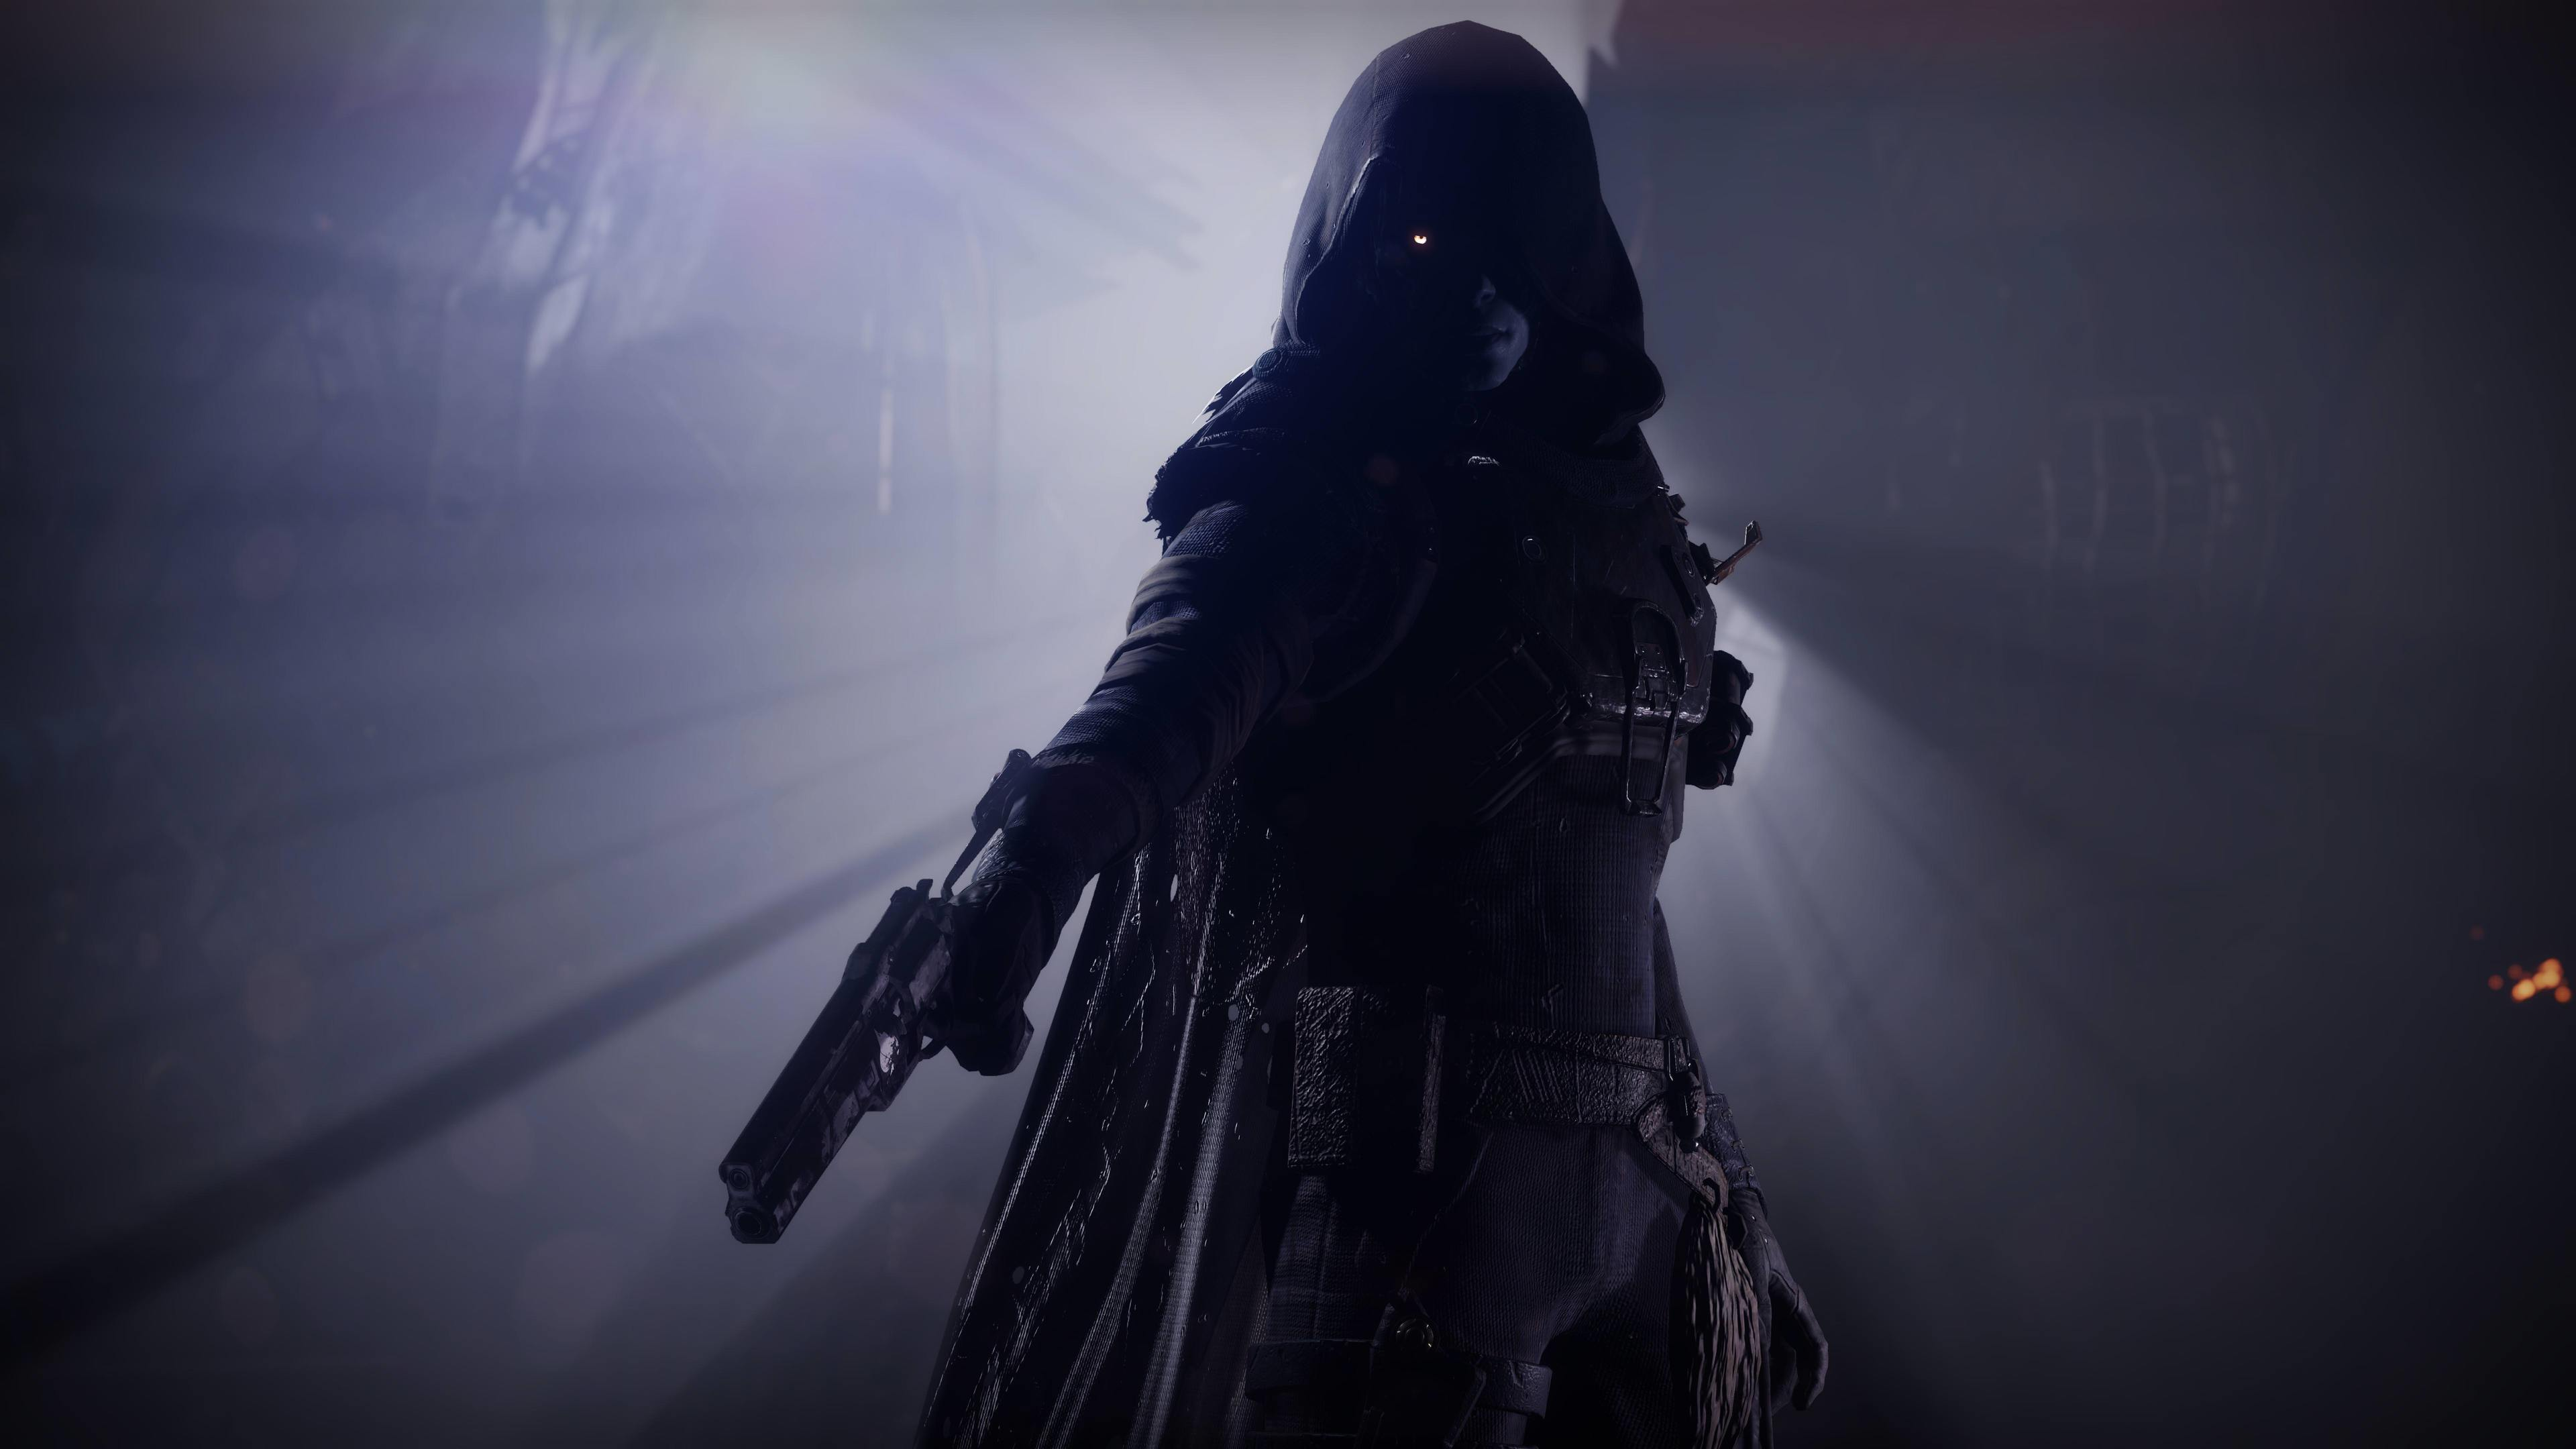 destiny 2 forsaken uldren 8k 1538344012 - Destiny 2 Forsaken Uldren 8k - hd-wallpapers, games wallpapers, destiny wallpapers, destiny 2 wallpapers, 8k wallpapers, 5k wallpapers, 4k-wallpapers